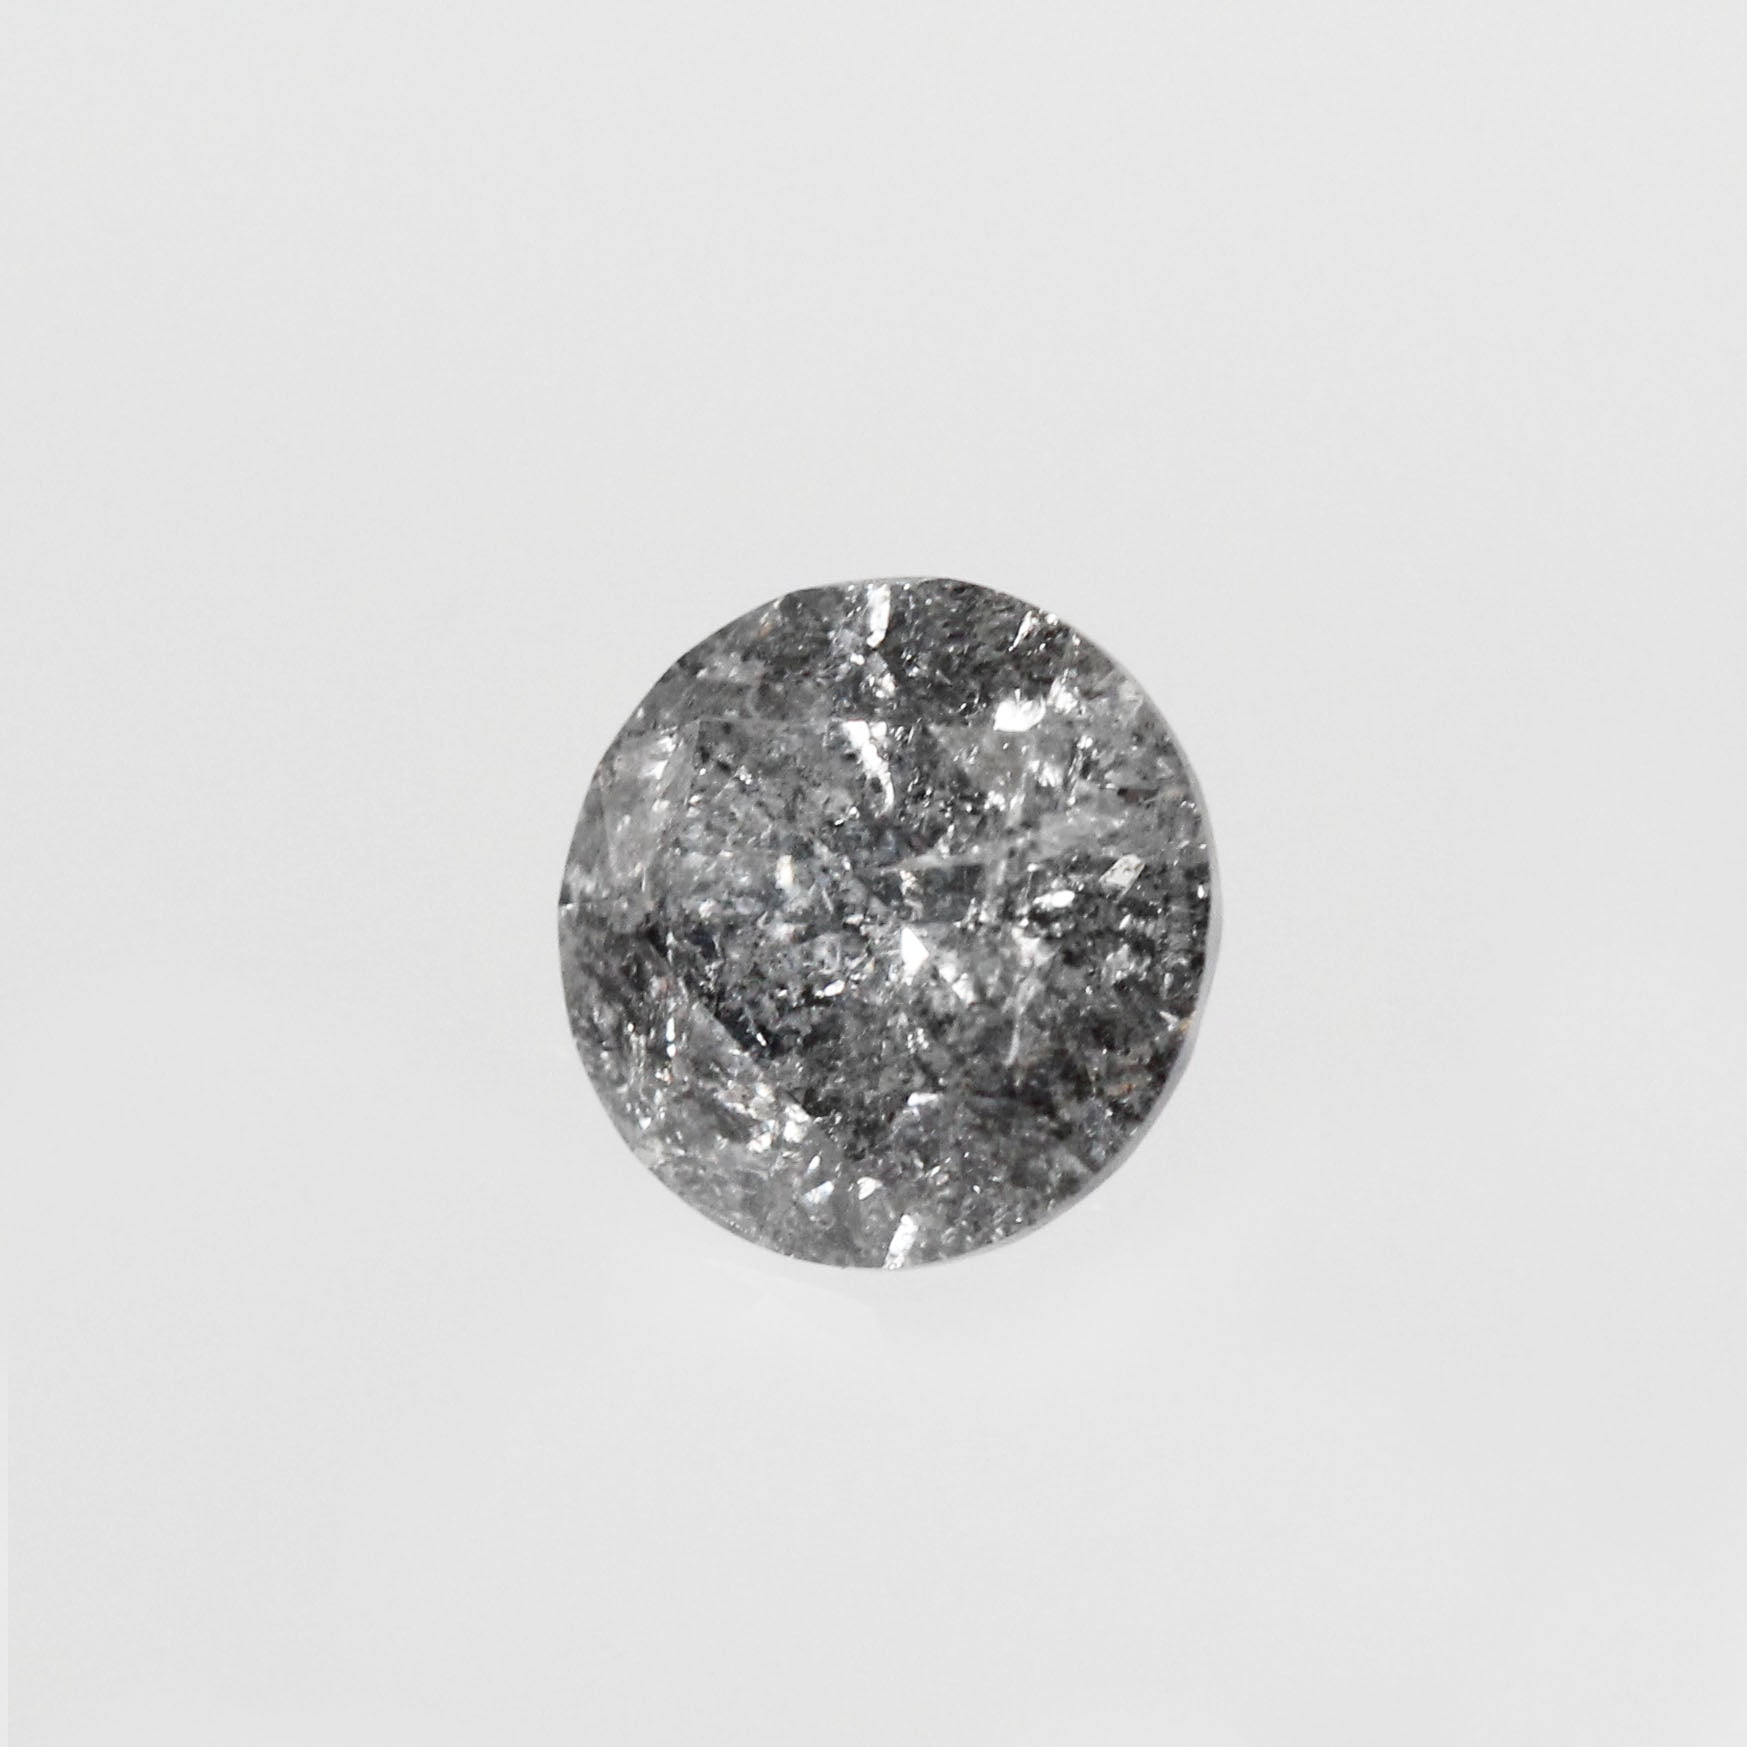 .91 Carat Round Celestial Diamond for Custom Work - Inventory Code RBS91 - Celestial Diamonds ® by Midwinter Co.